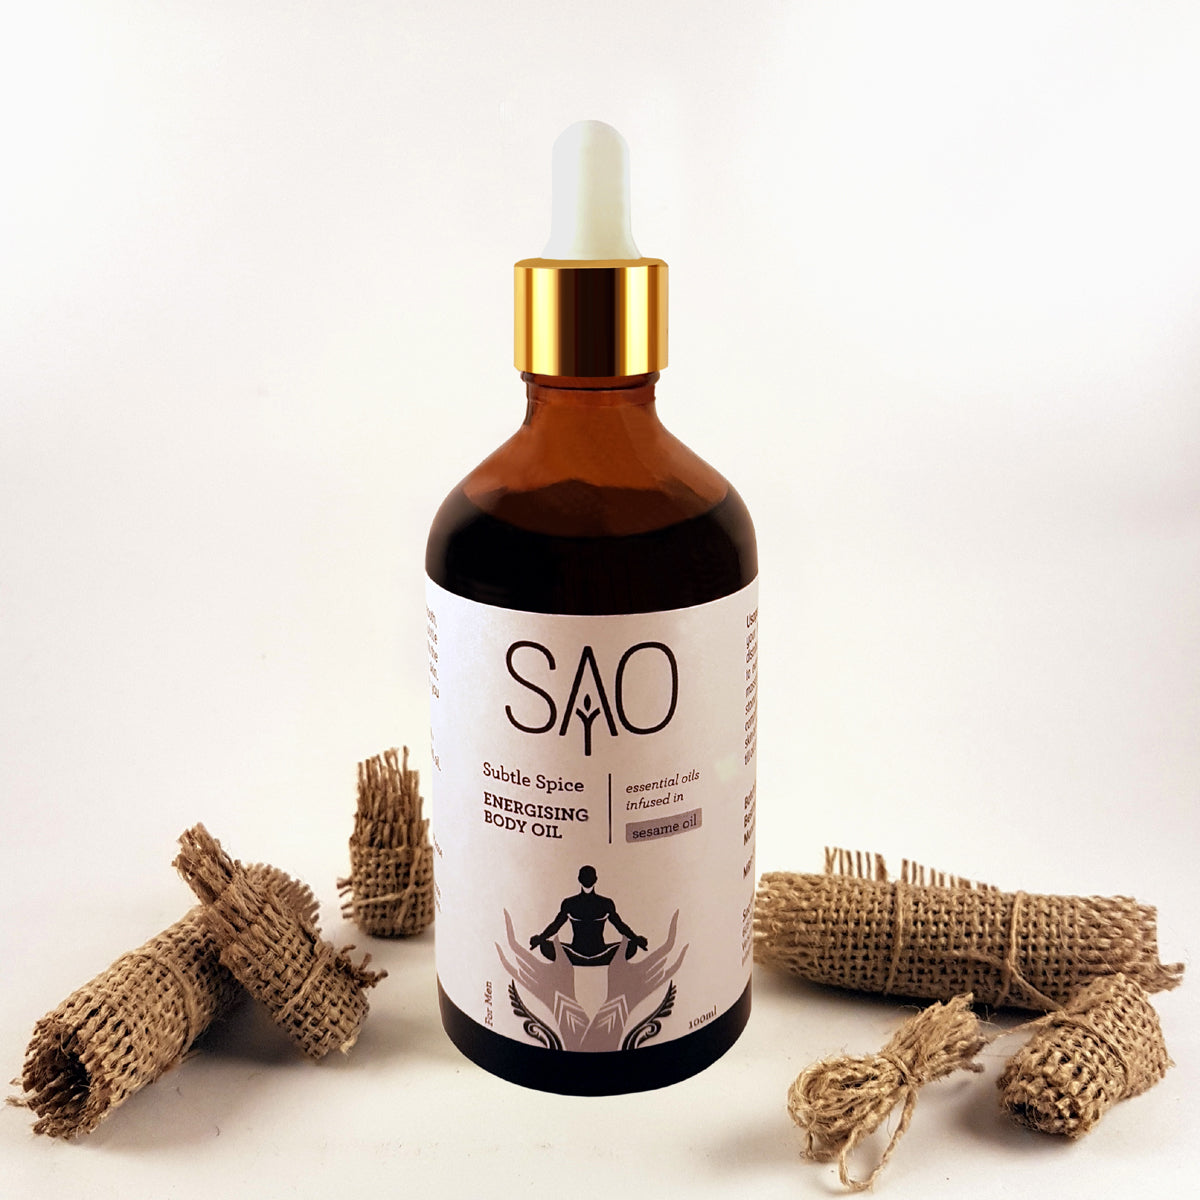 ENERGISING BODY OIL For Men Essential Oils with Sesame